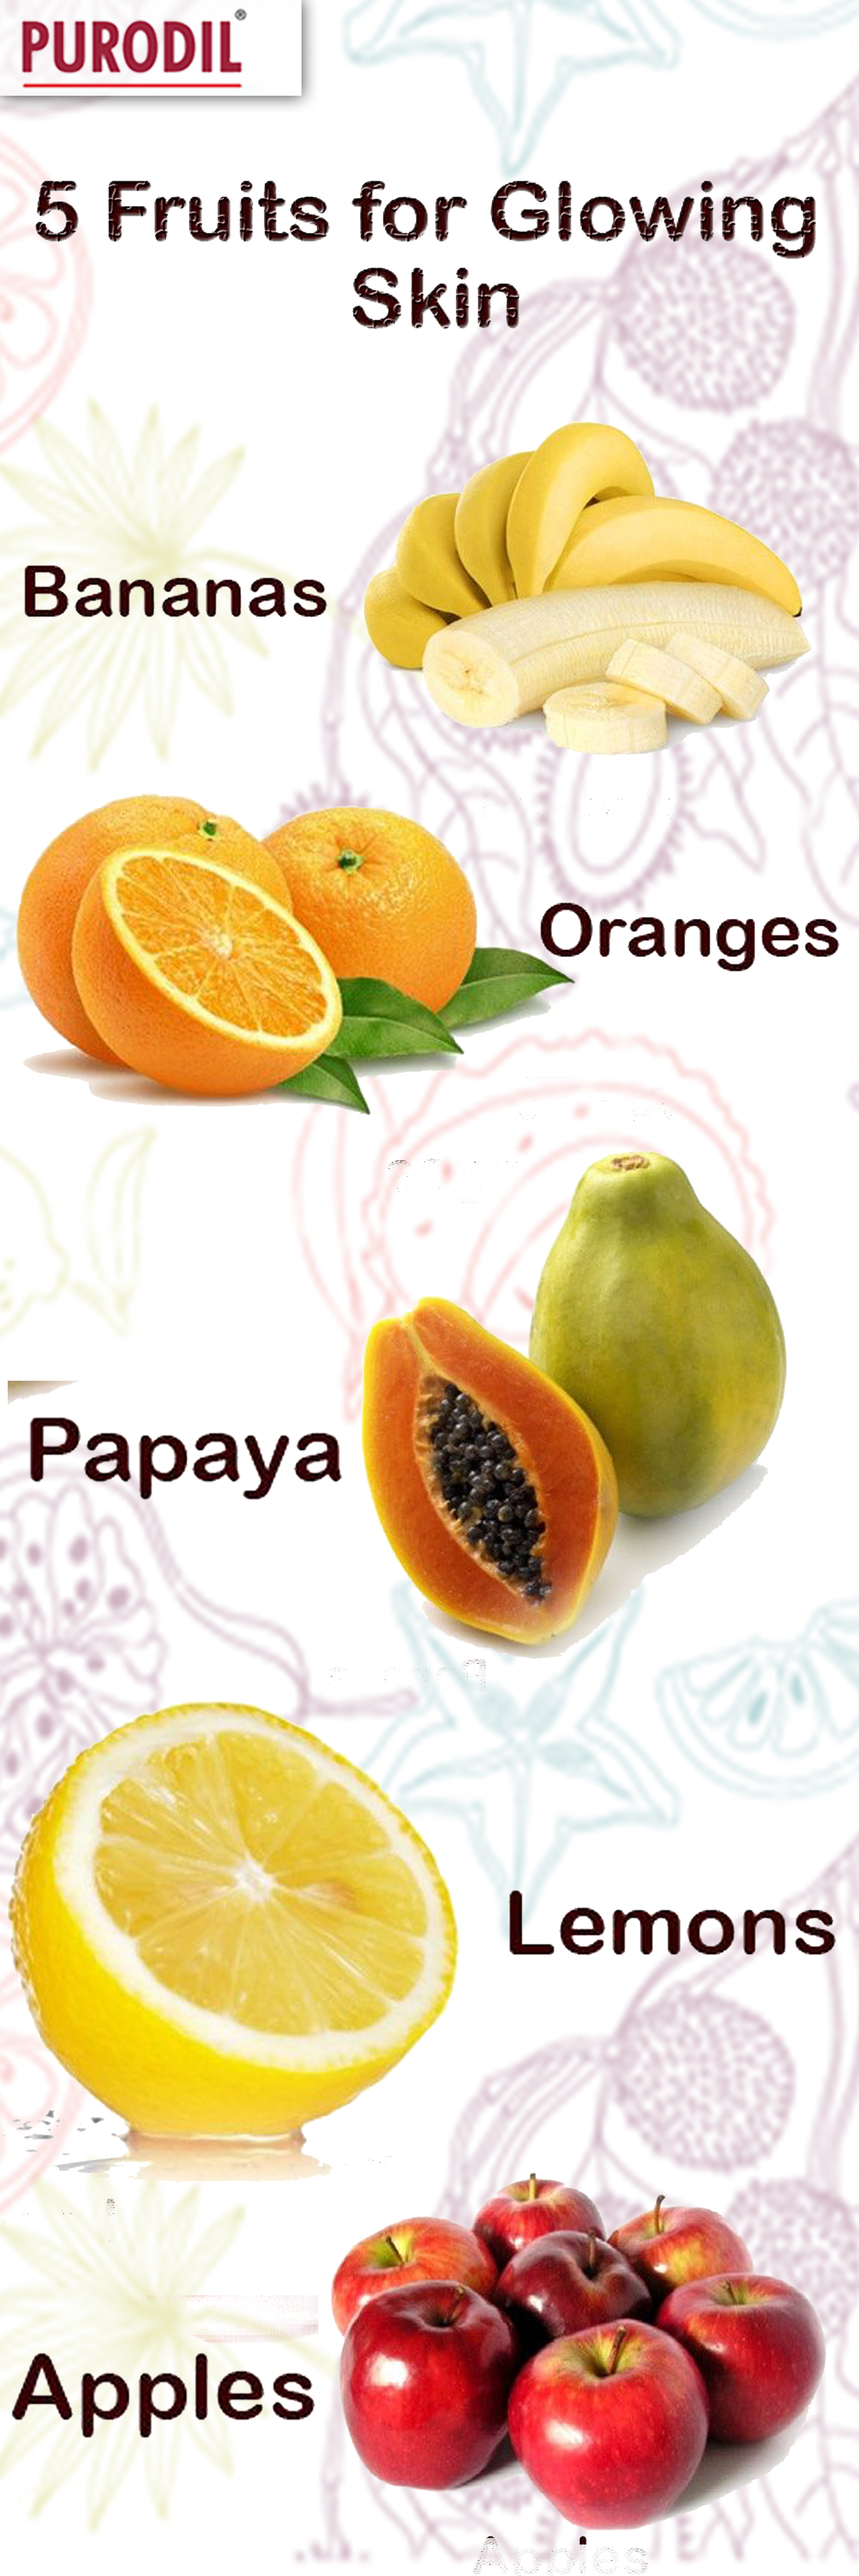 Want To Look Beautiful Try These Fruits To Make Your Skin Glow Skincare Healthyskin Healtht Skin Care Remedies Fruits For Glowing Skin Diy Anti Aging